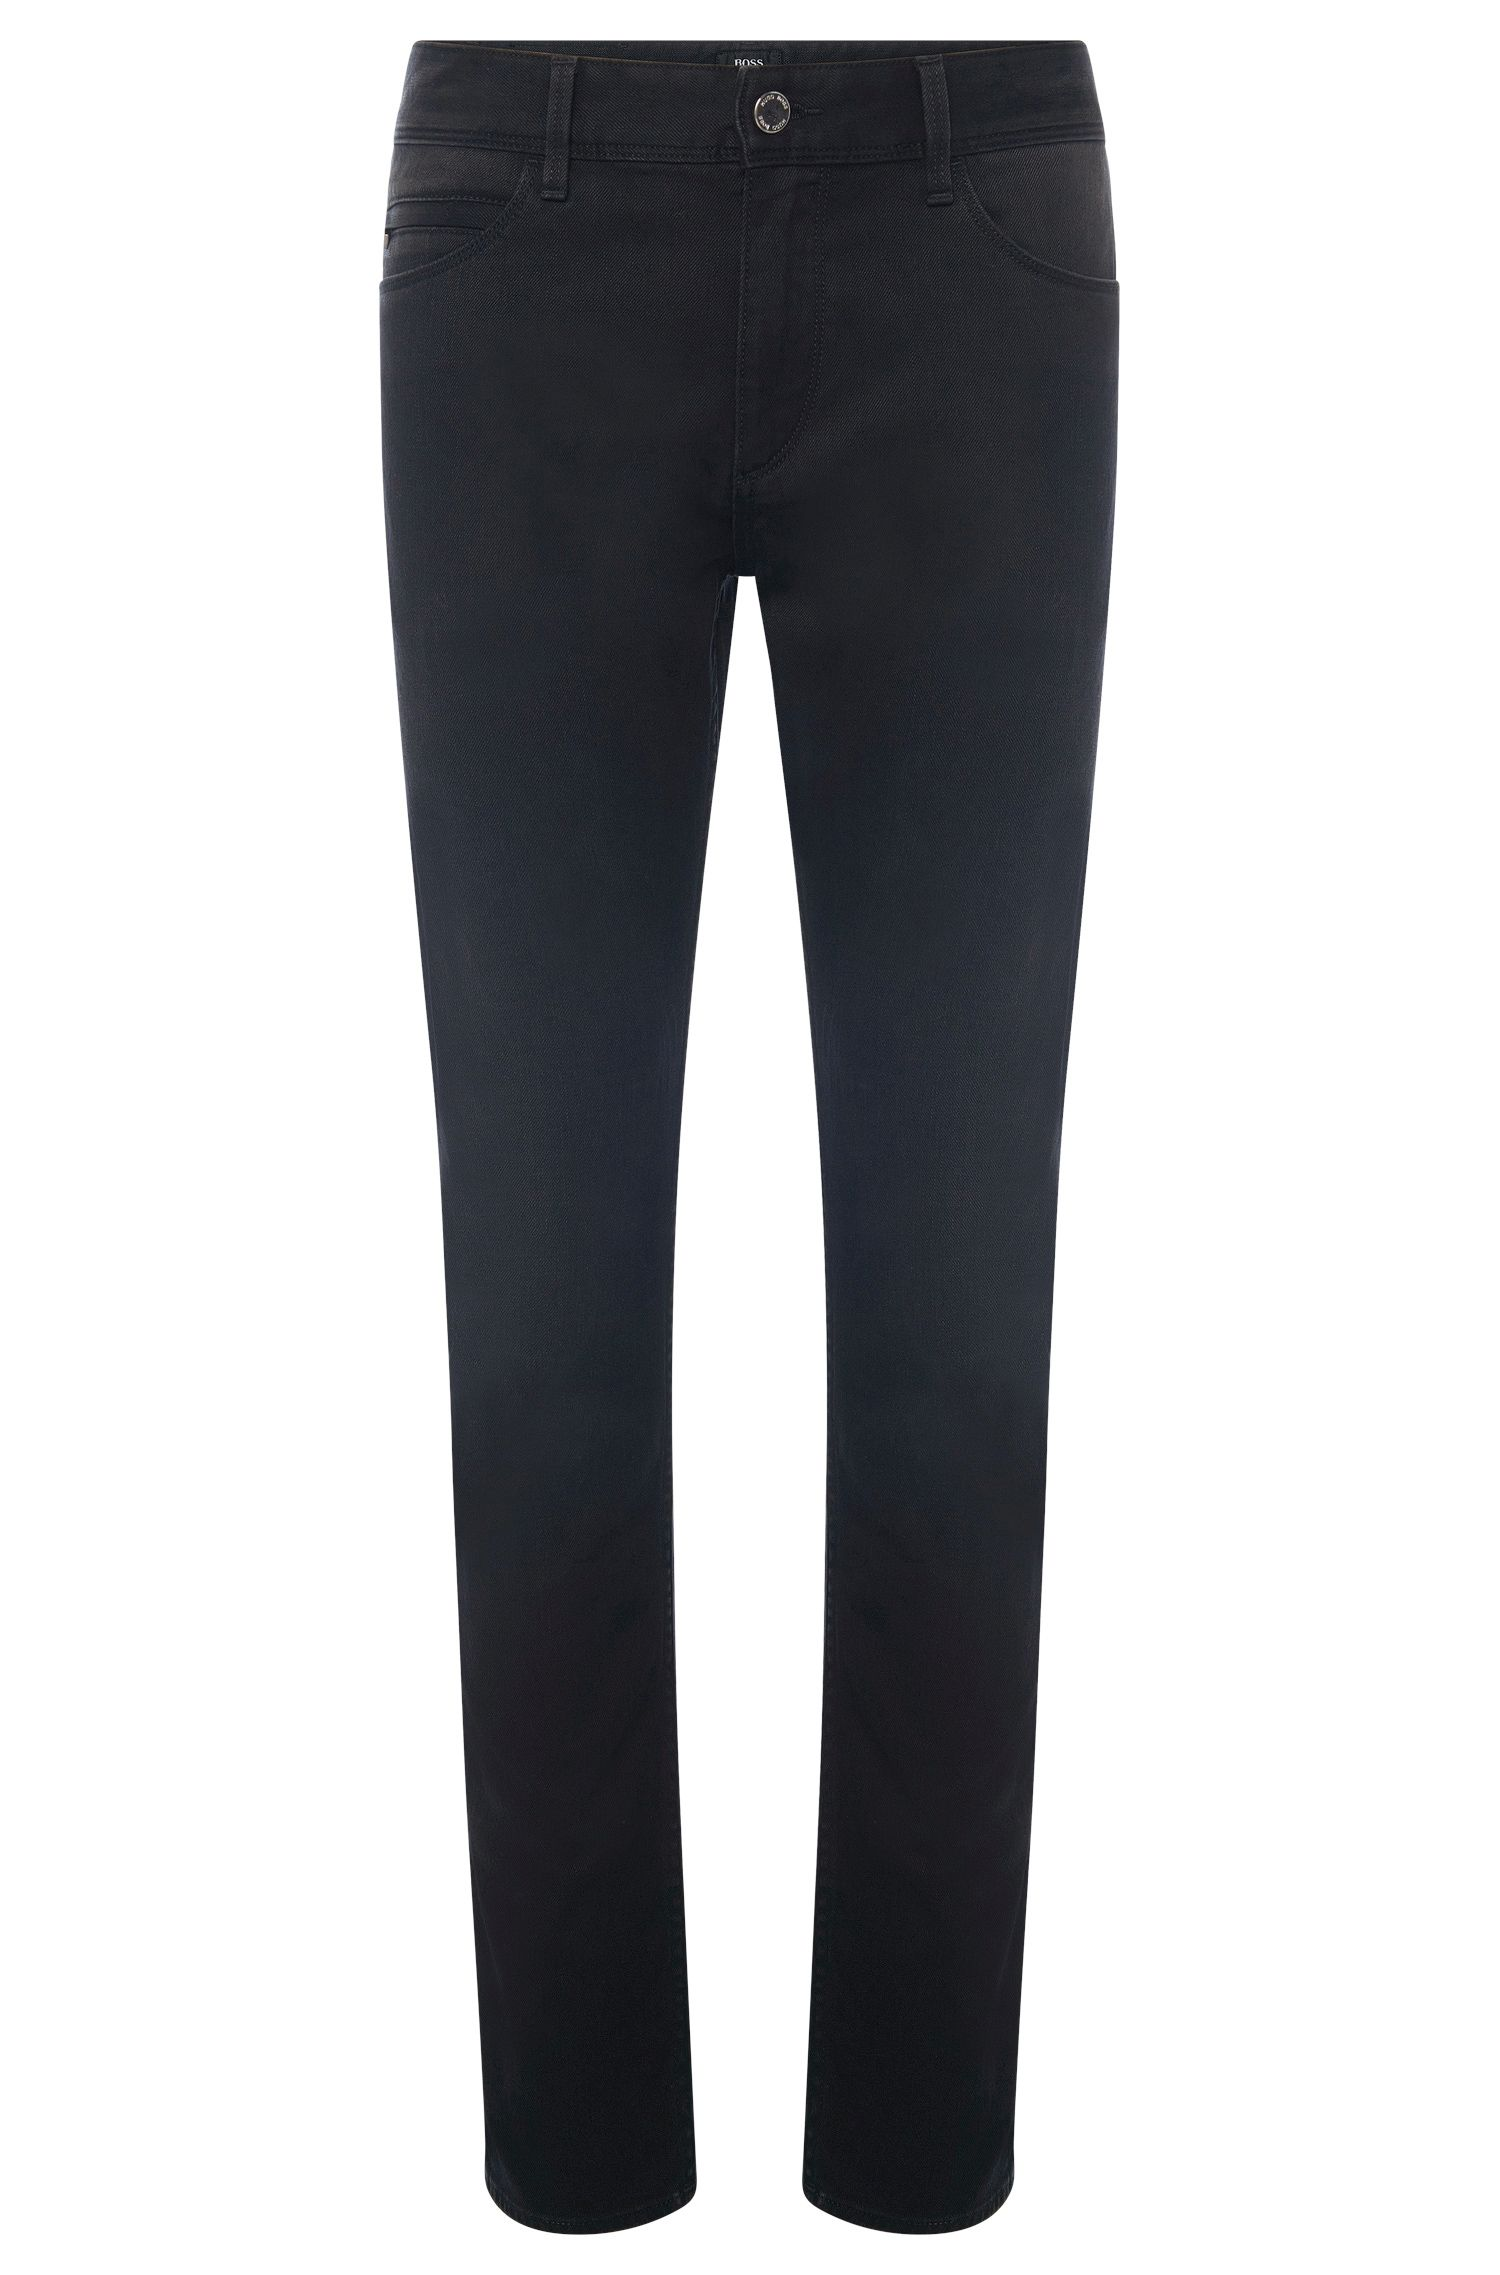 Slim-fit jeans in stretch cotton: 'Delaware5-1-MB' from the Mercedes-Benz Collection